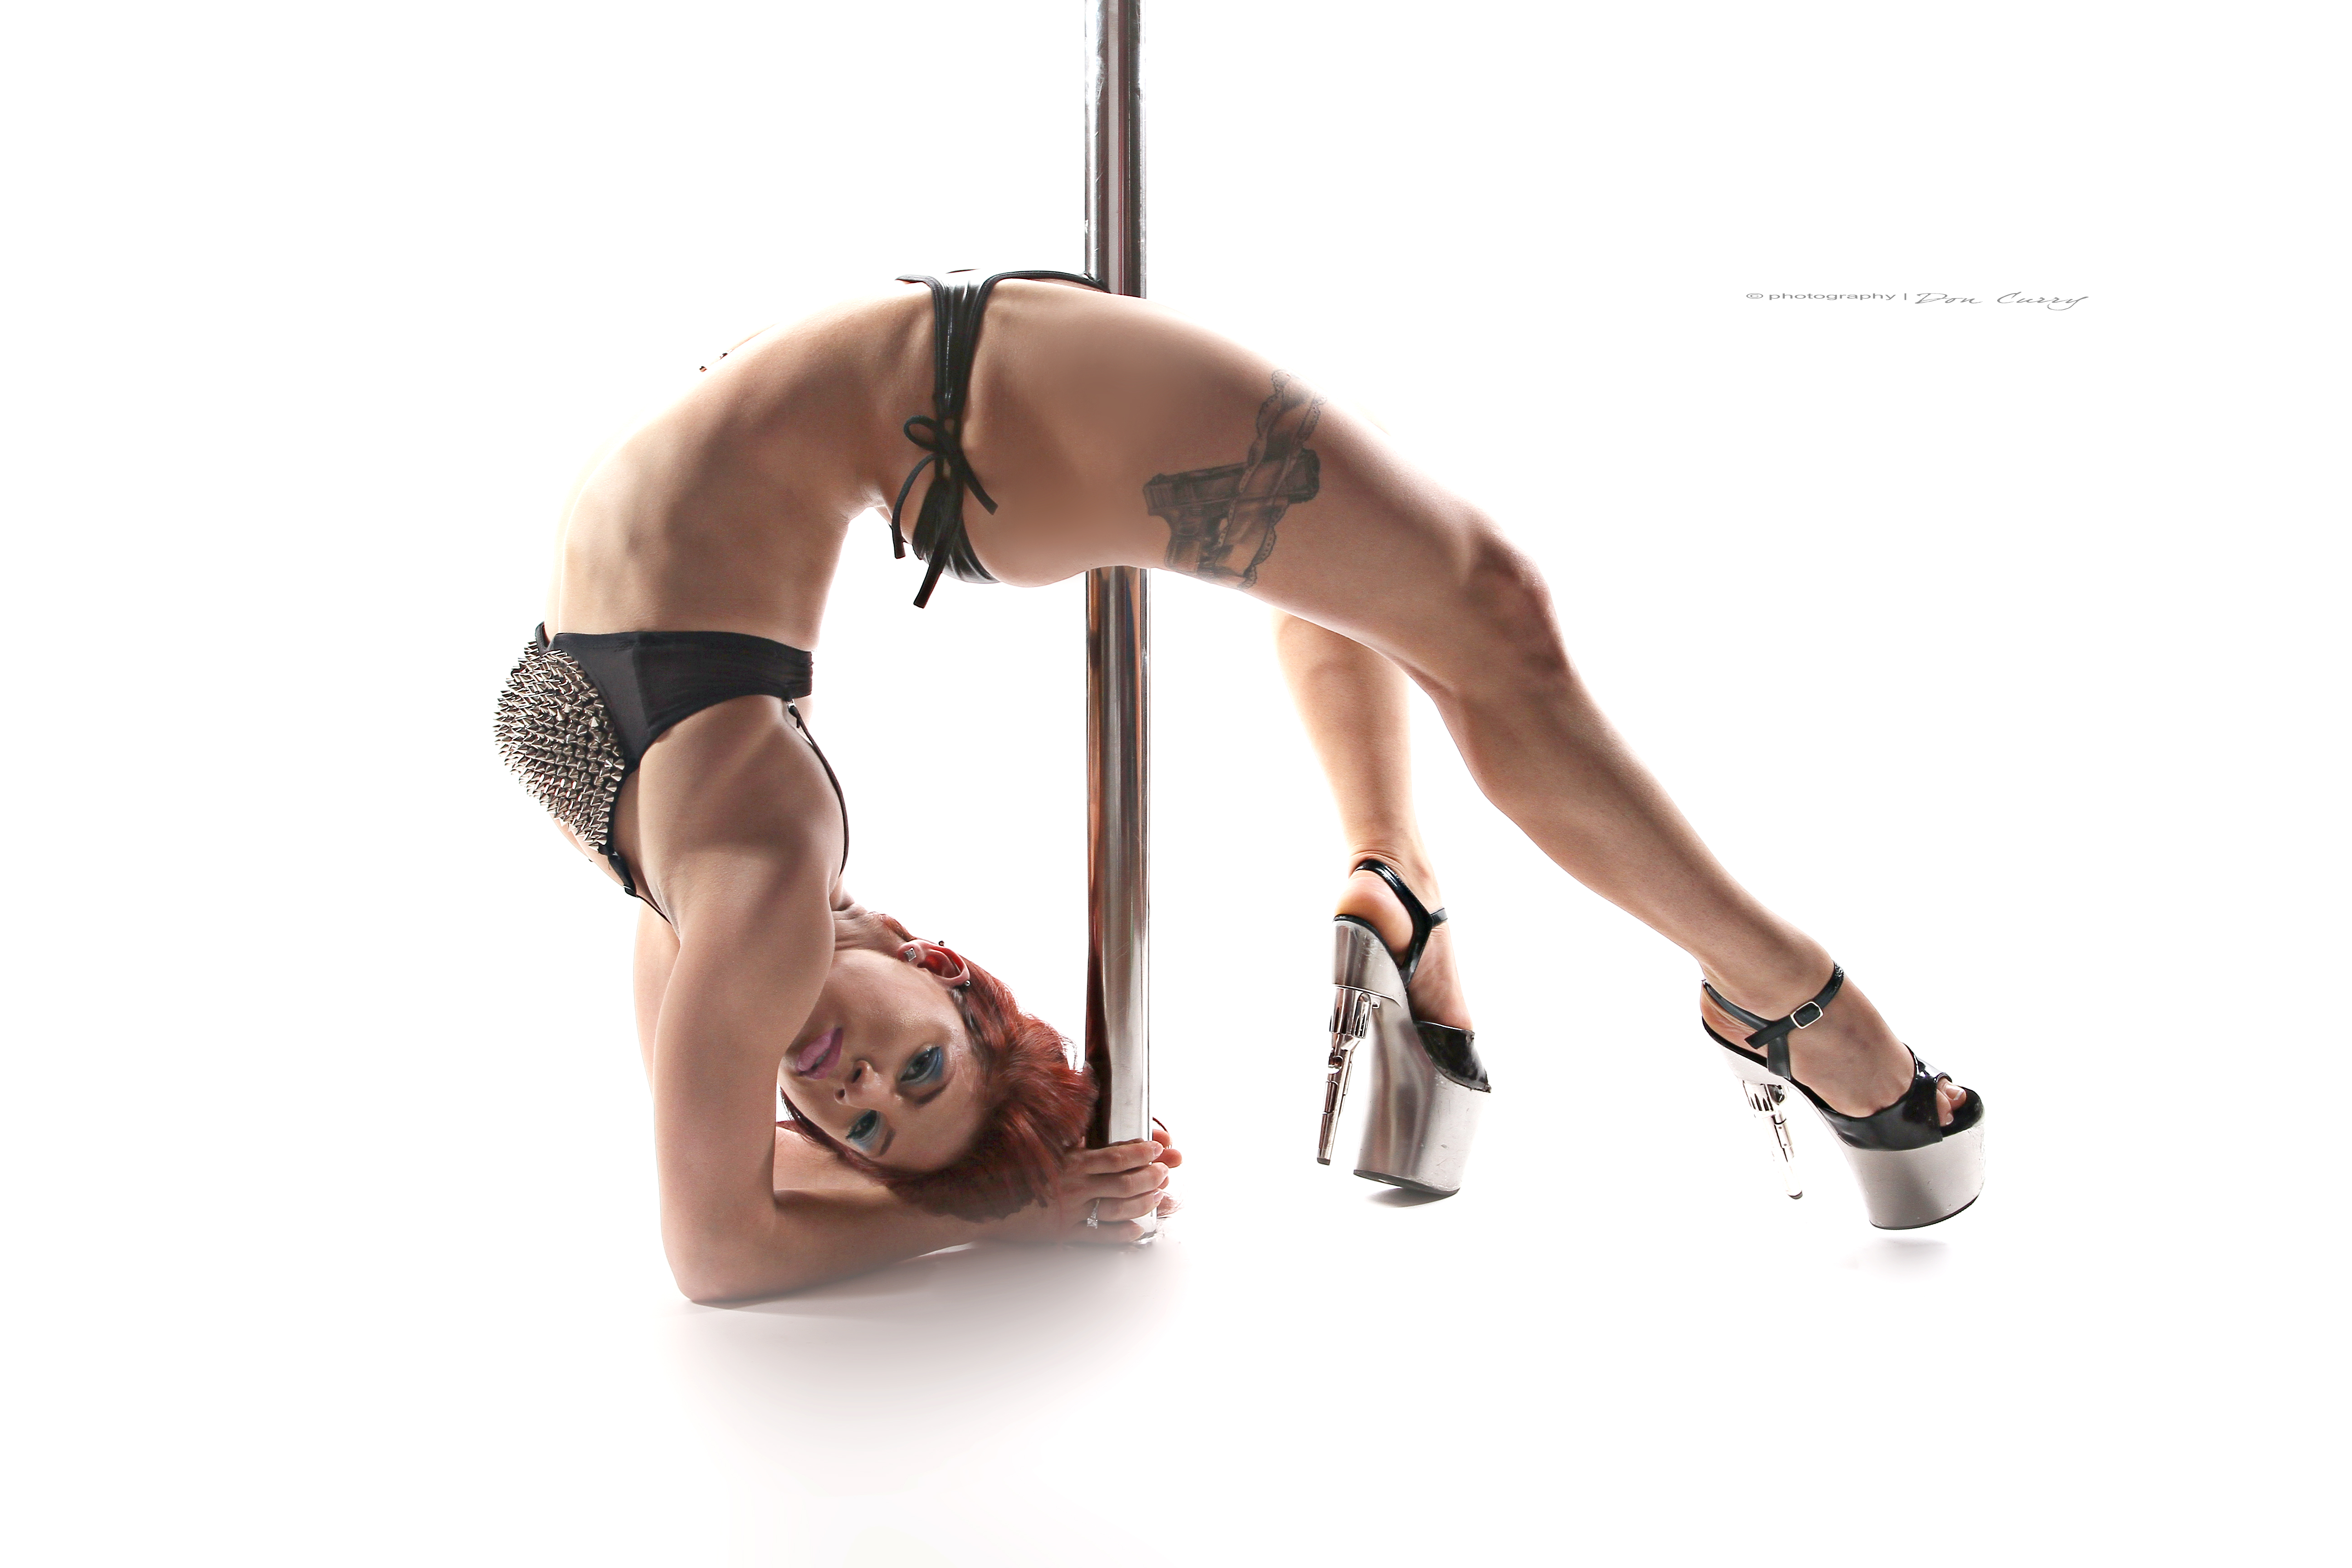 Pole dancing and nude stretching by a sexy flexible babe